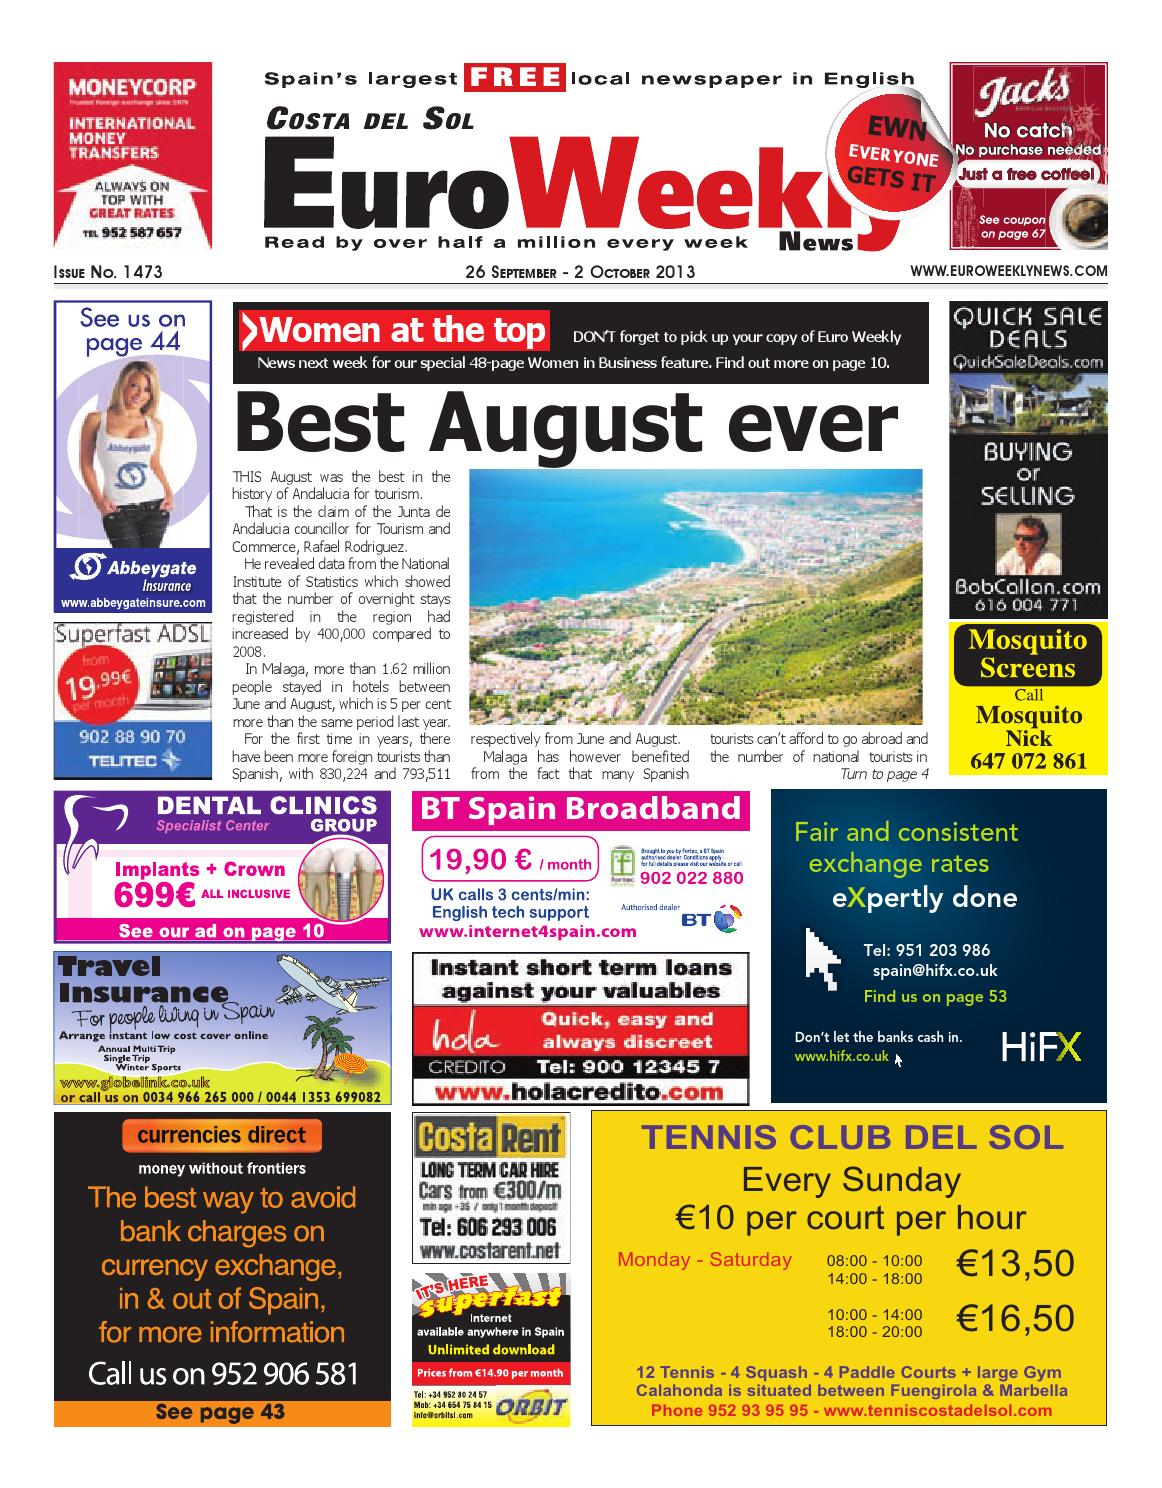 Euro Weekly News - Costa del Sol 26 September - 2 October 2013 Issue 1473  by Euro Weekly News Media S.A. - issuu 48cd5effe162